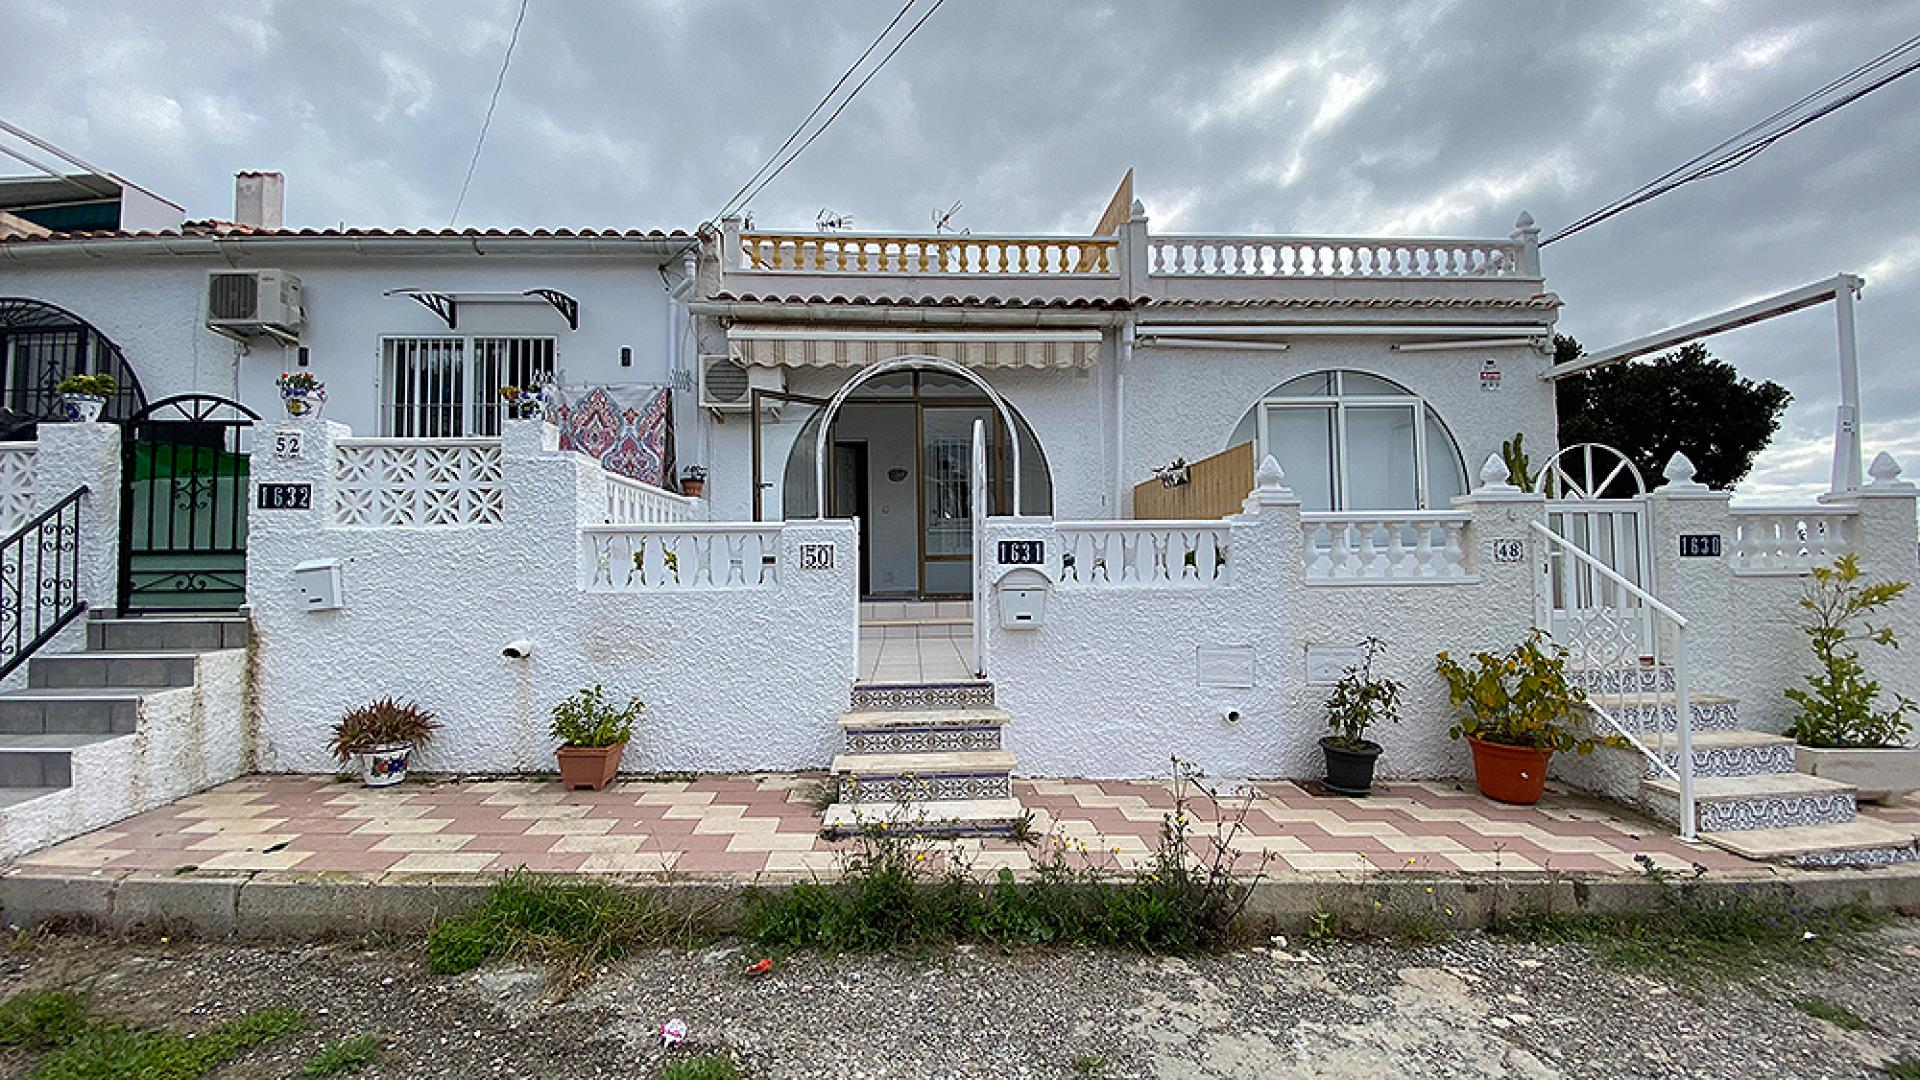 Townhouse in Alicante (Torrevieja)